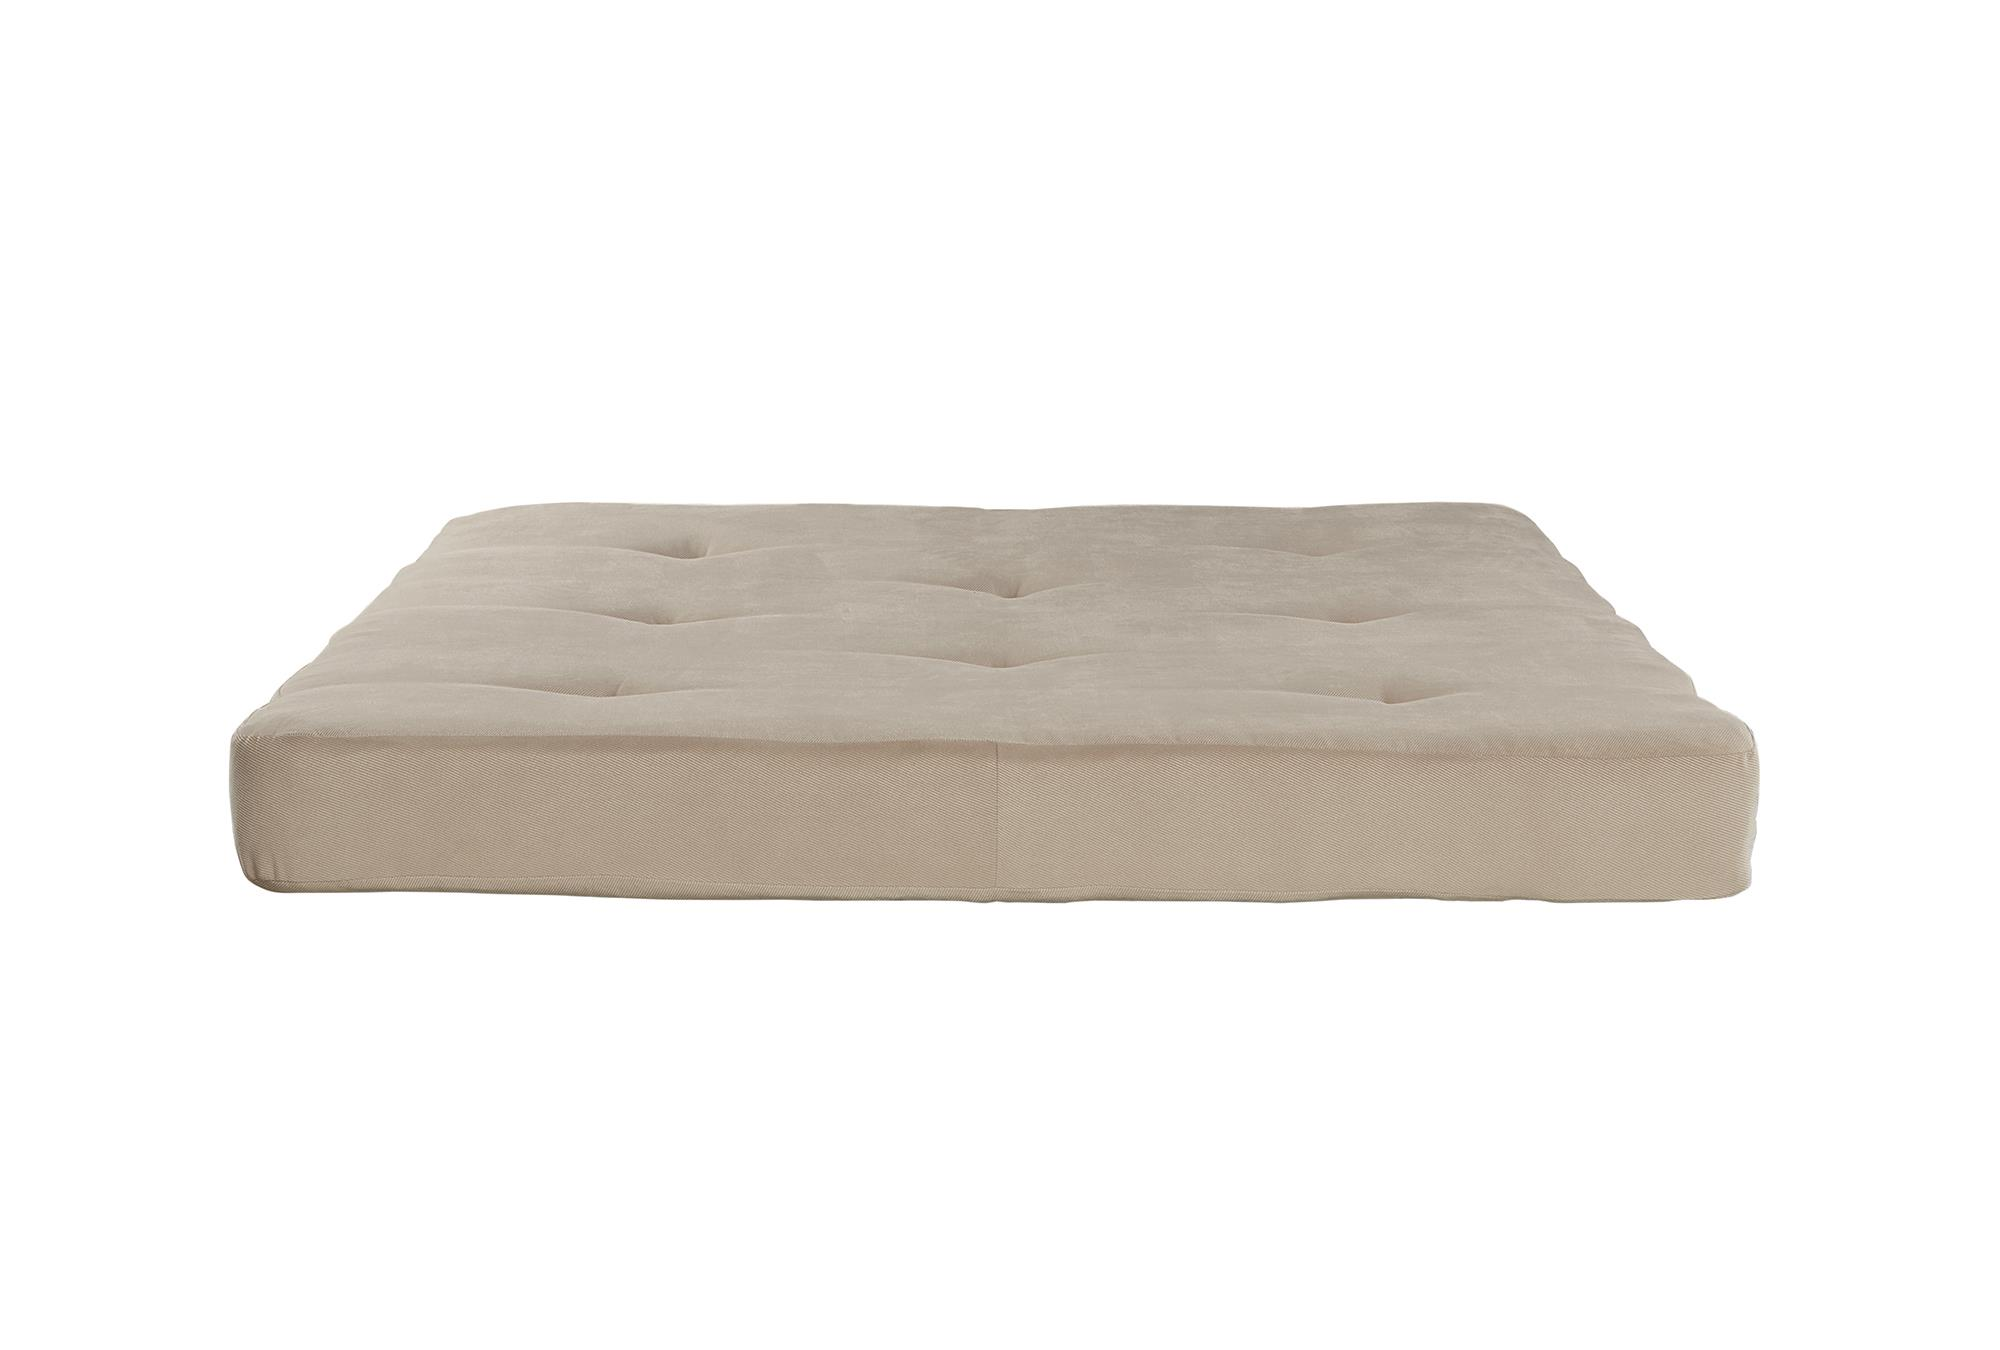 DHP Value 6 Inch Full Size Poly Filled Futon Mattress Fits Full-Size Futon Frame